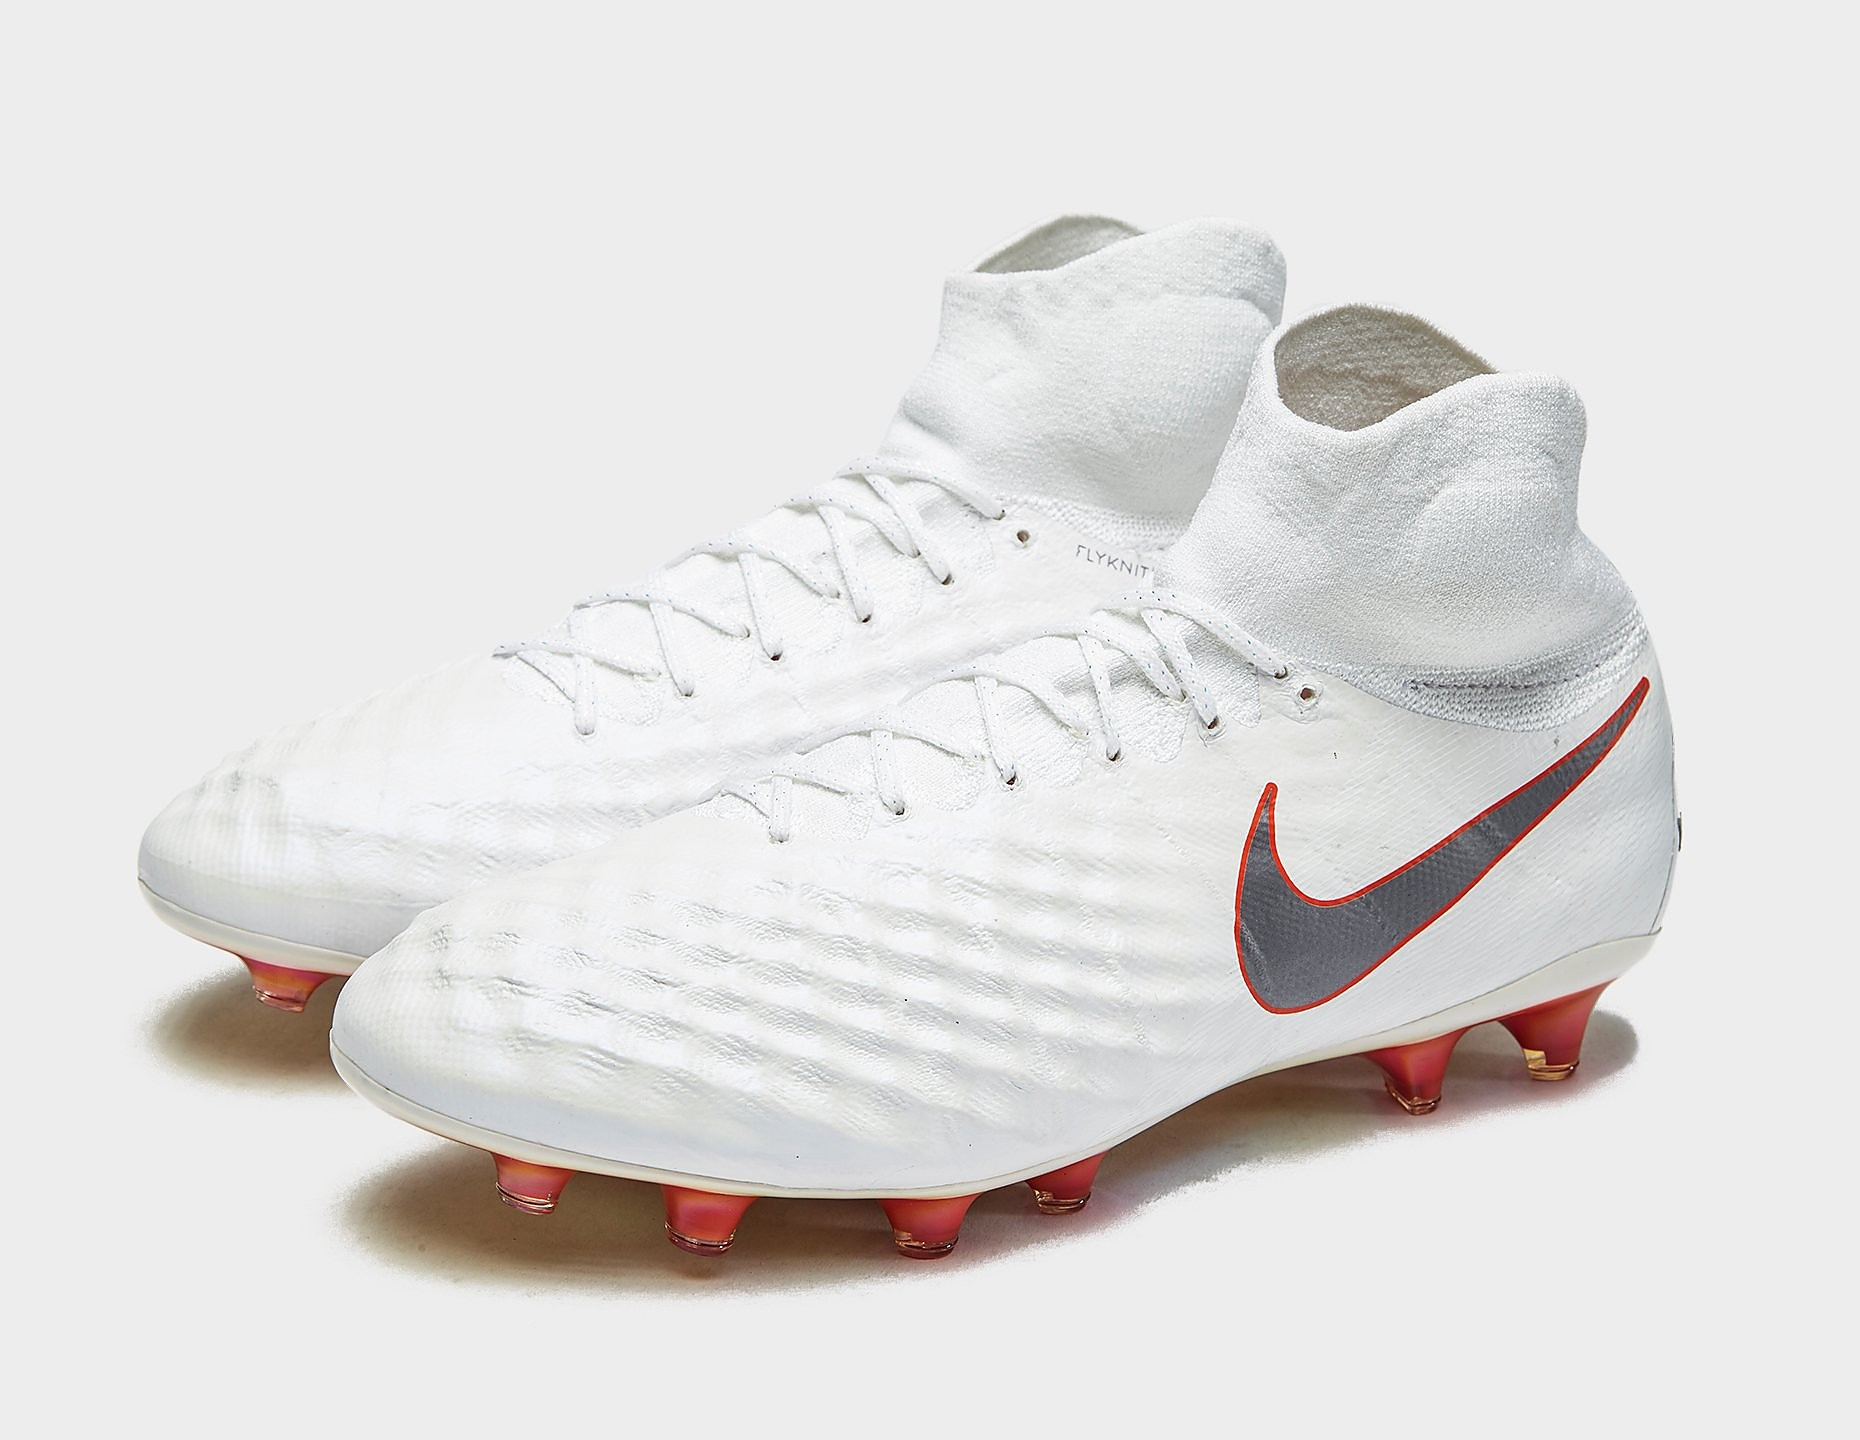 Nike Just Do It Magista Elite Dynamic Fit FG Homme